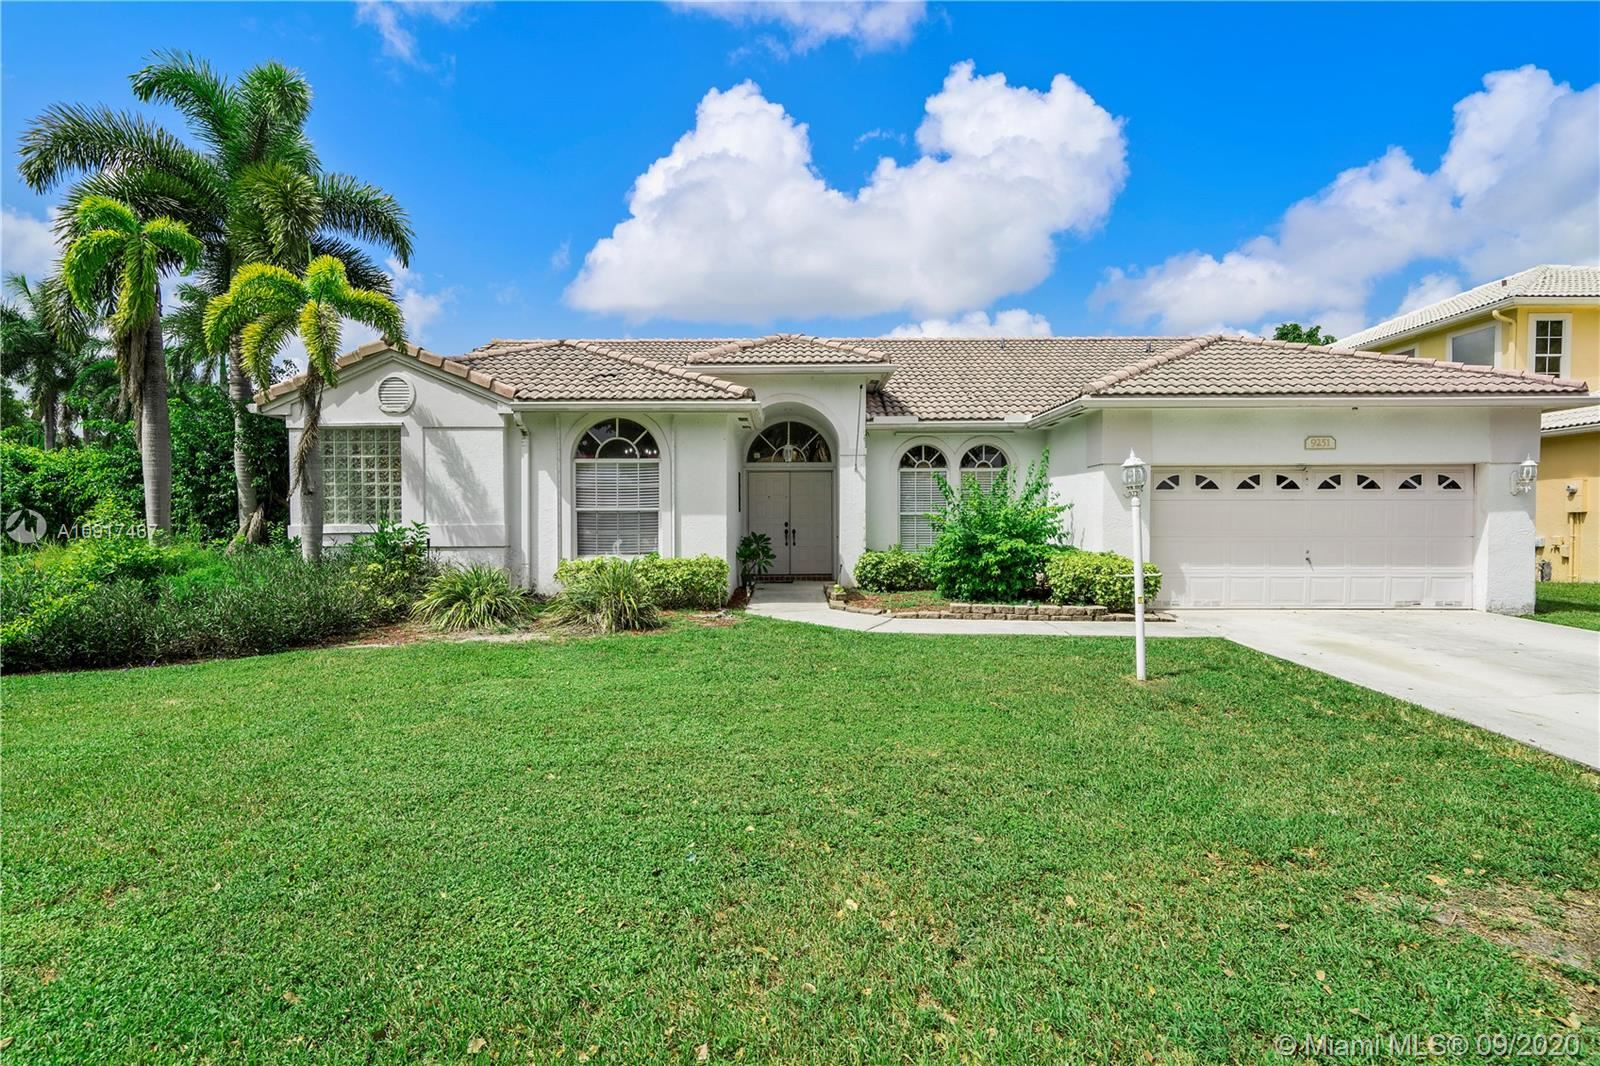 9251 NW 42nd Ct, Coral Springs, FL 33065 - #: A10917467